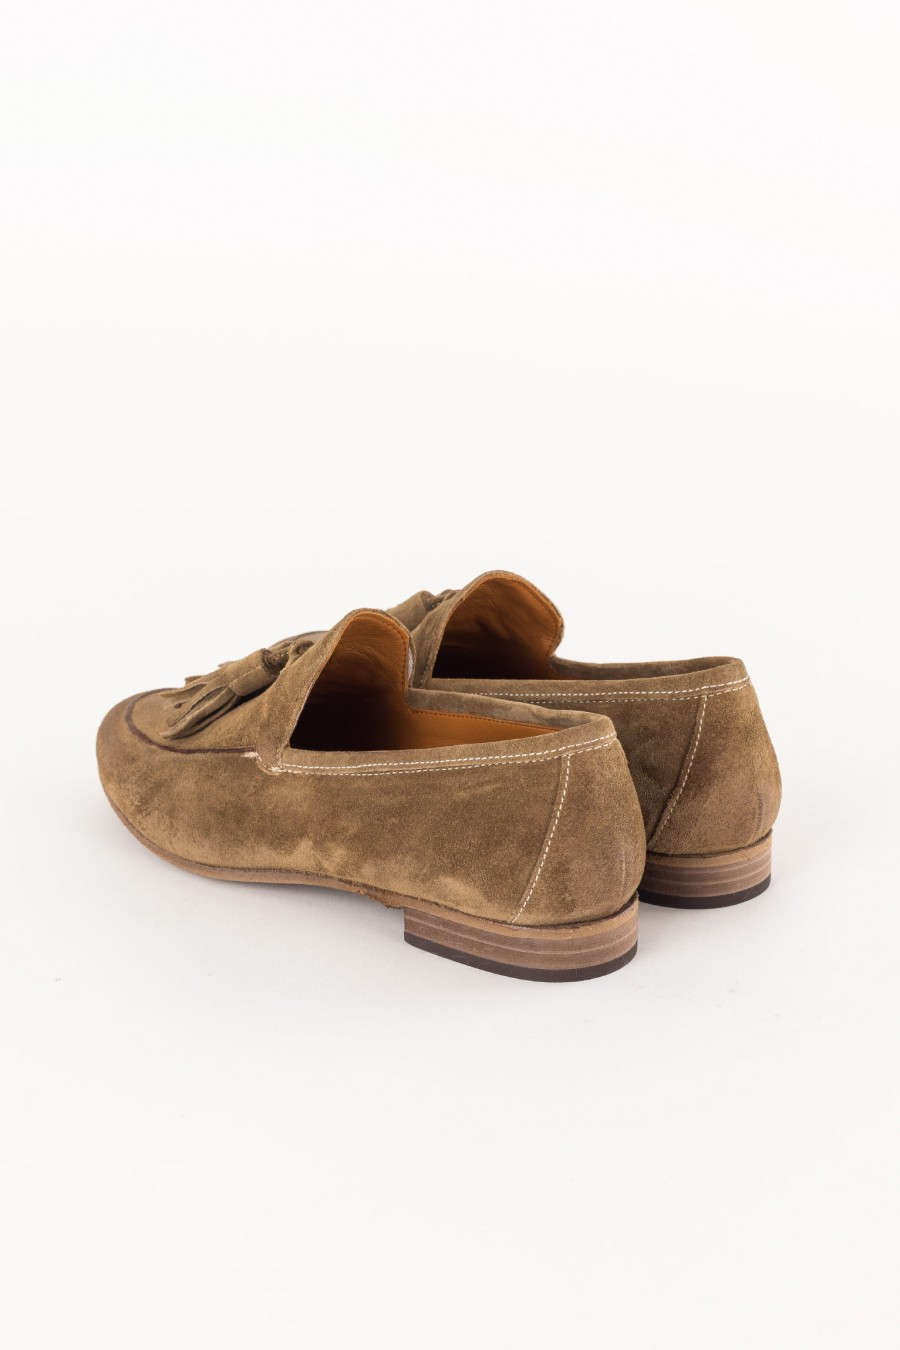 suede brown loafer